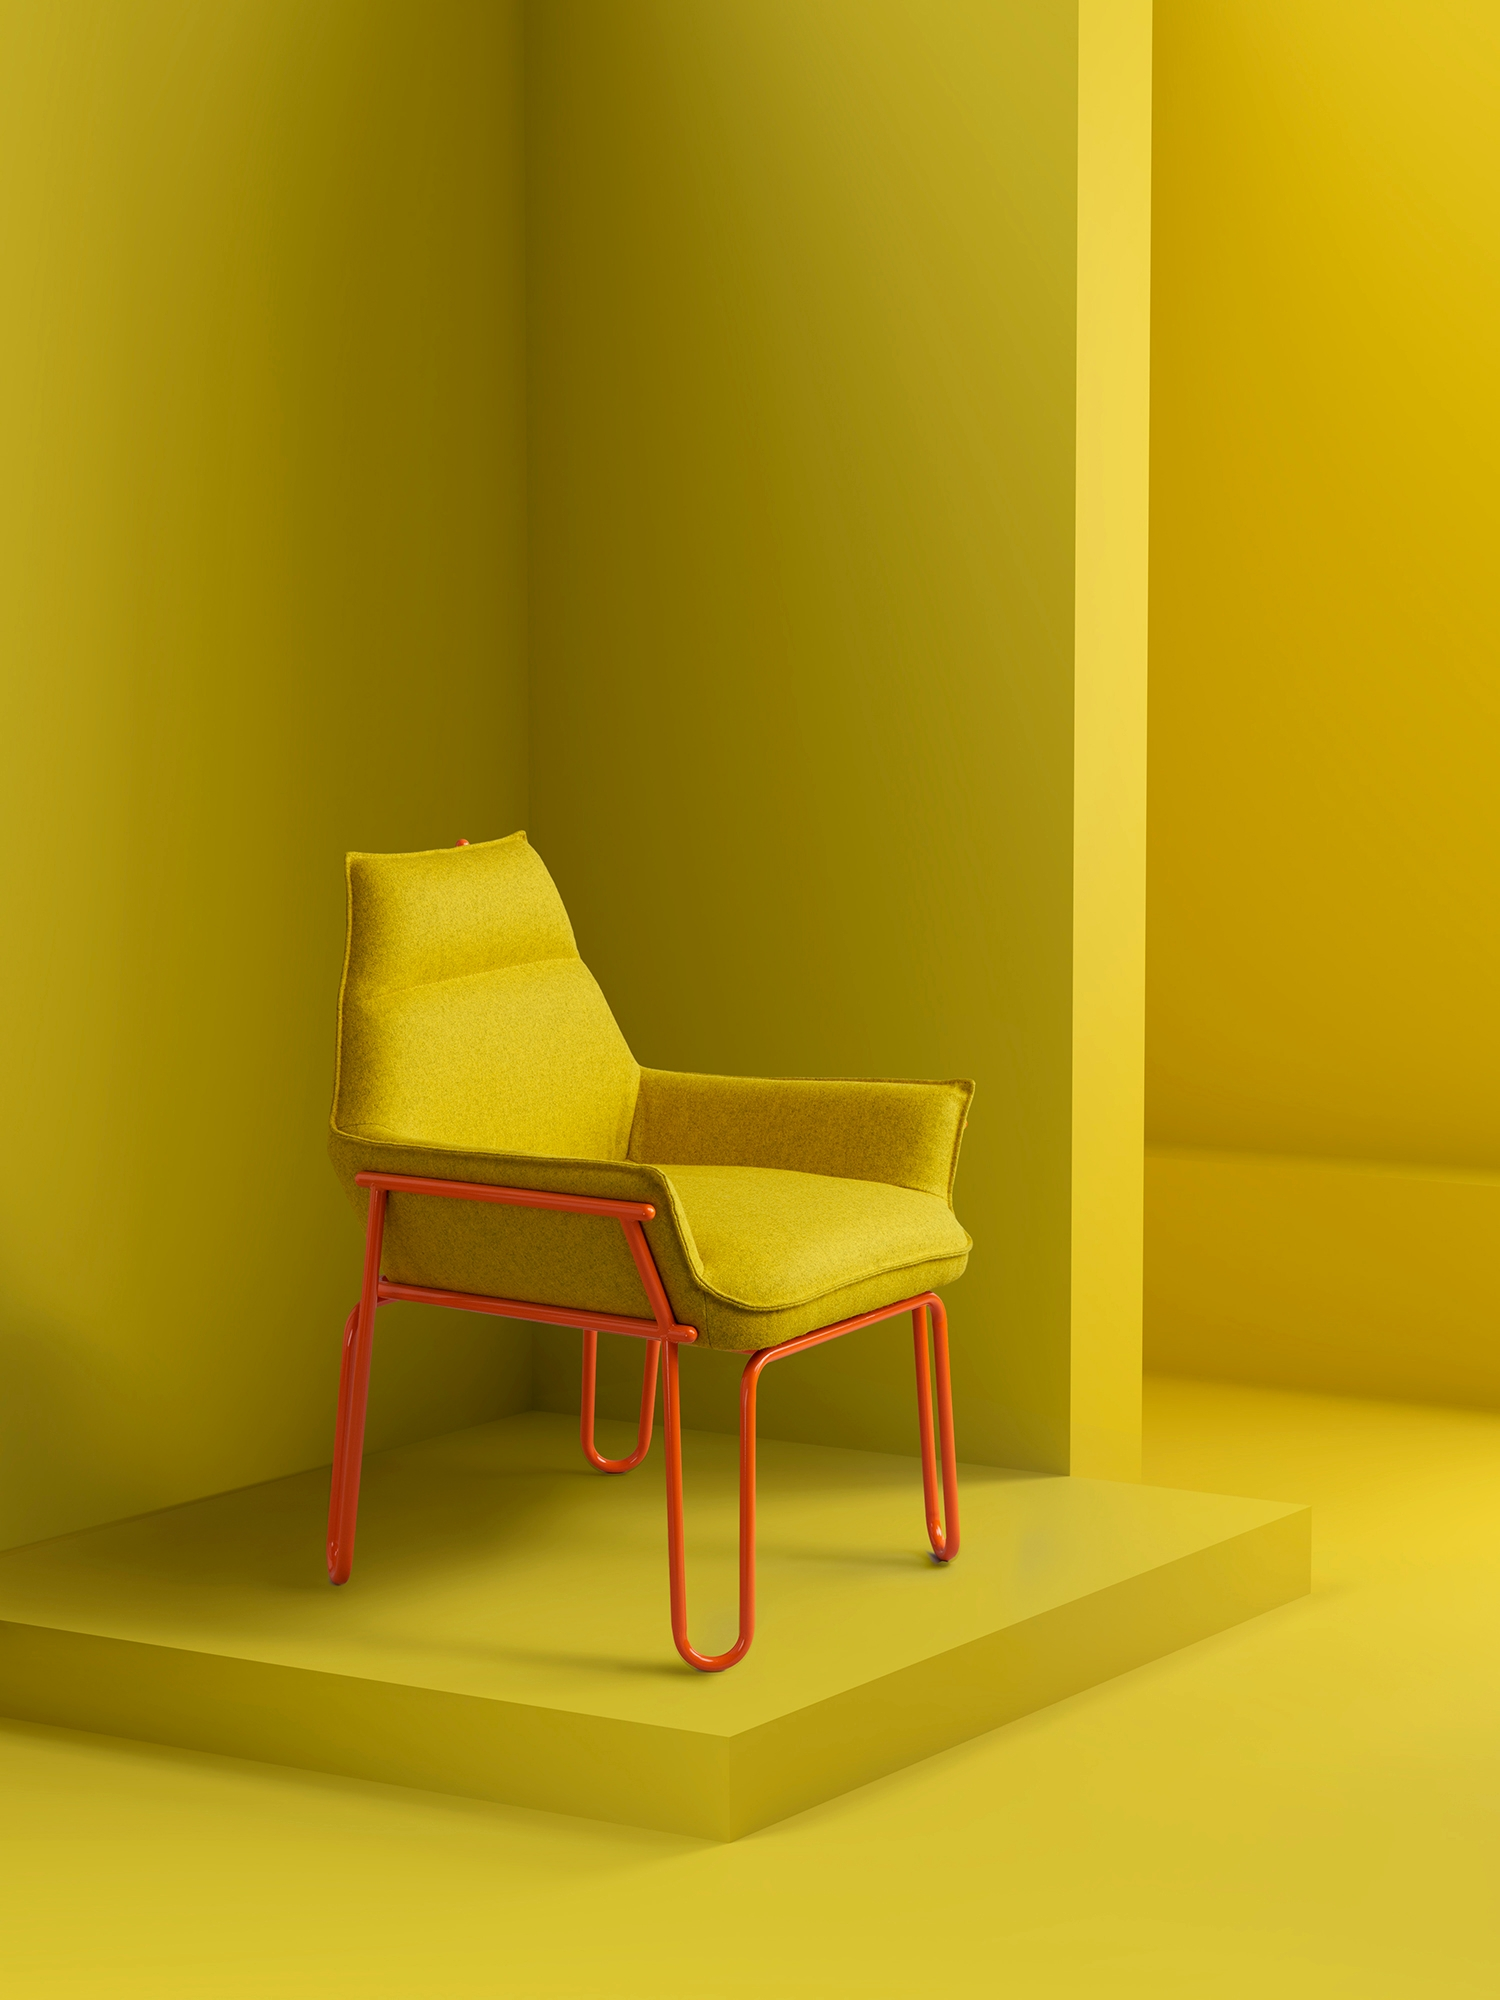 Sister Chair designed Tom Hanco - doweljones | ello